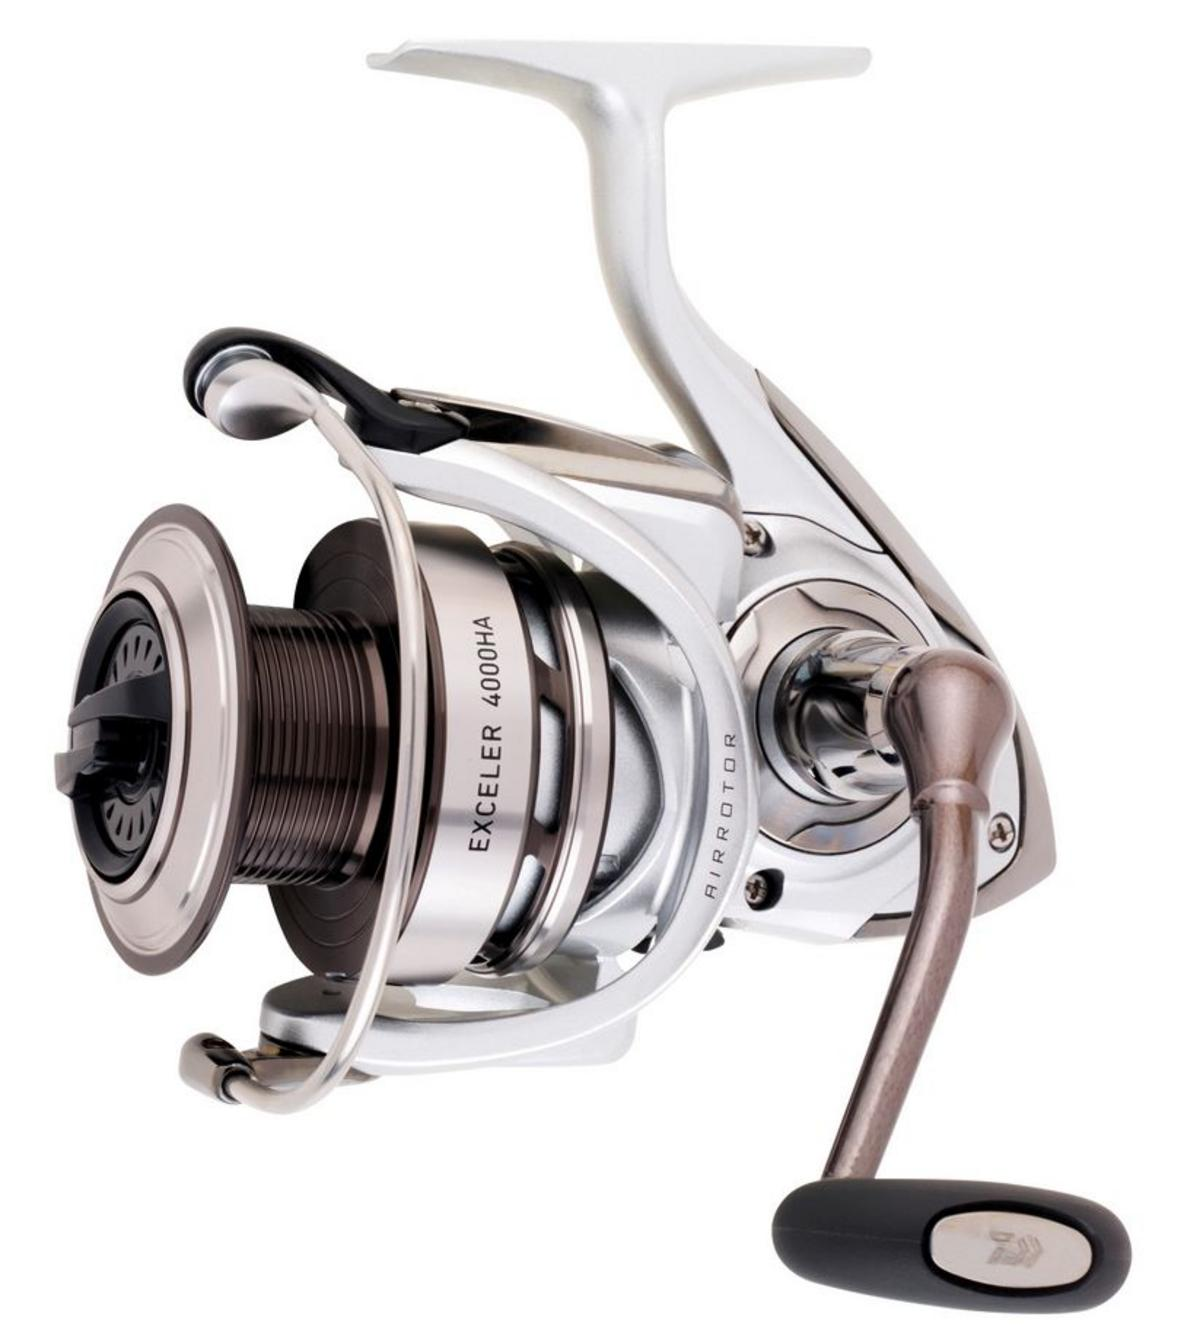 NEW DAIWA EXCELER FISHING REEL ALL MODELS AVAILABLE